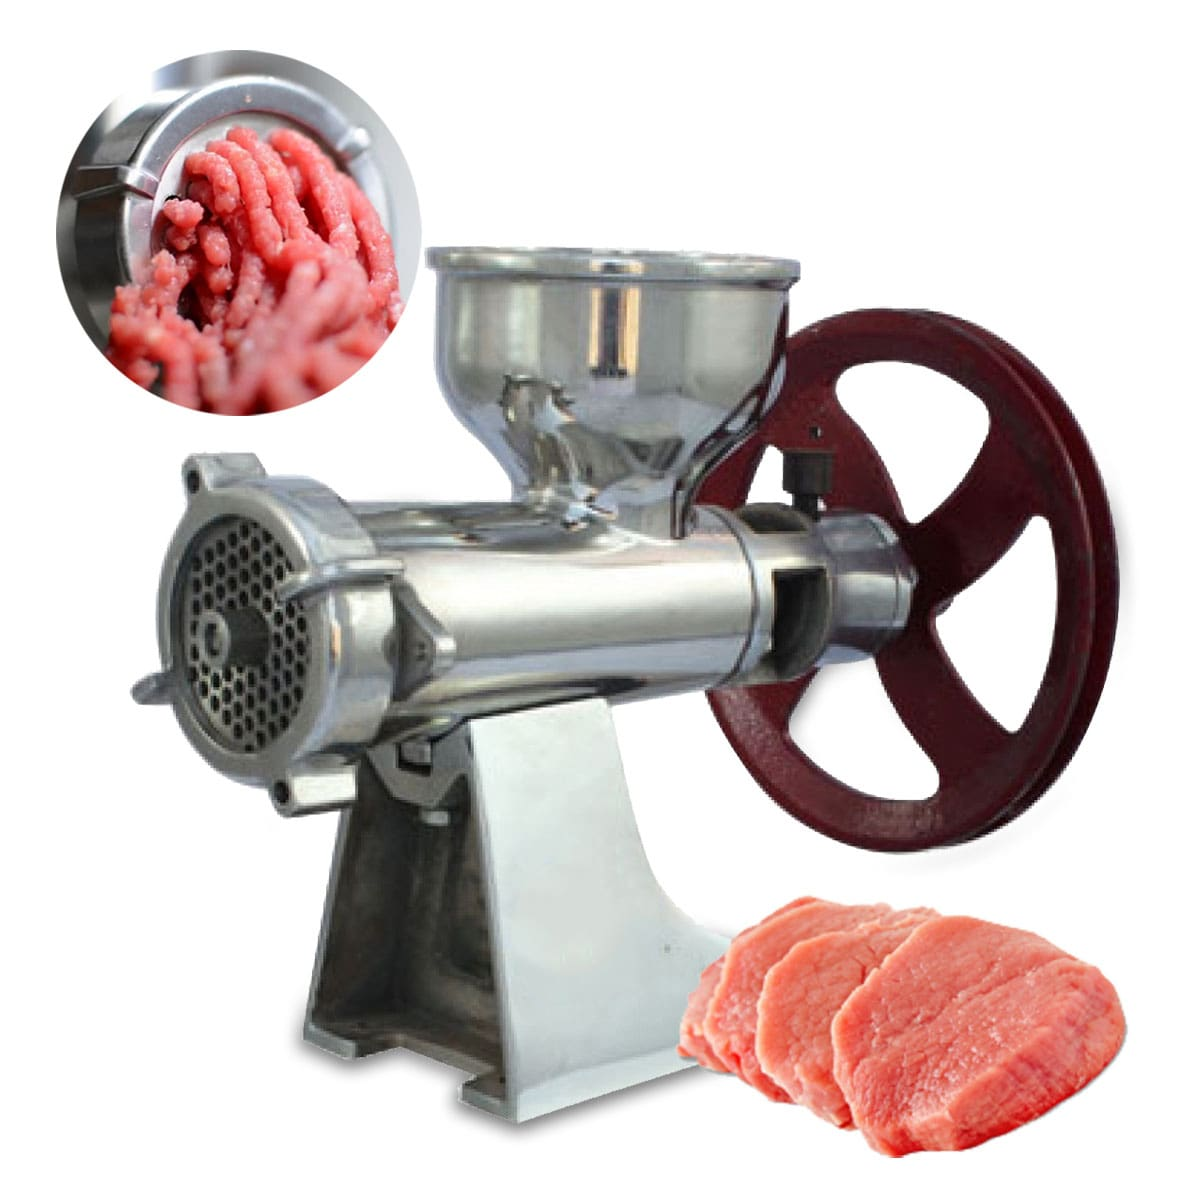 Made in Punjab - Heavy Duty Stainless Steel Power Meat Mincer without Motor